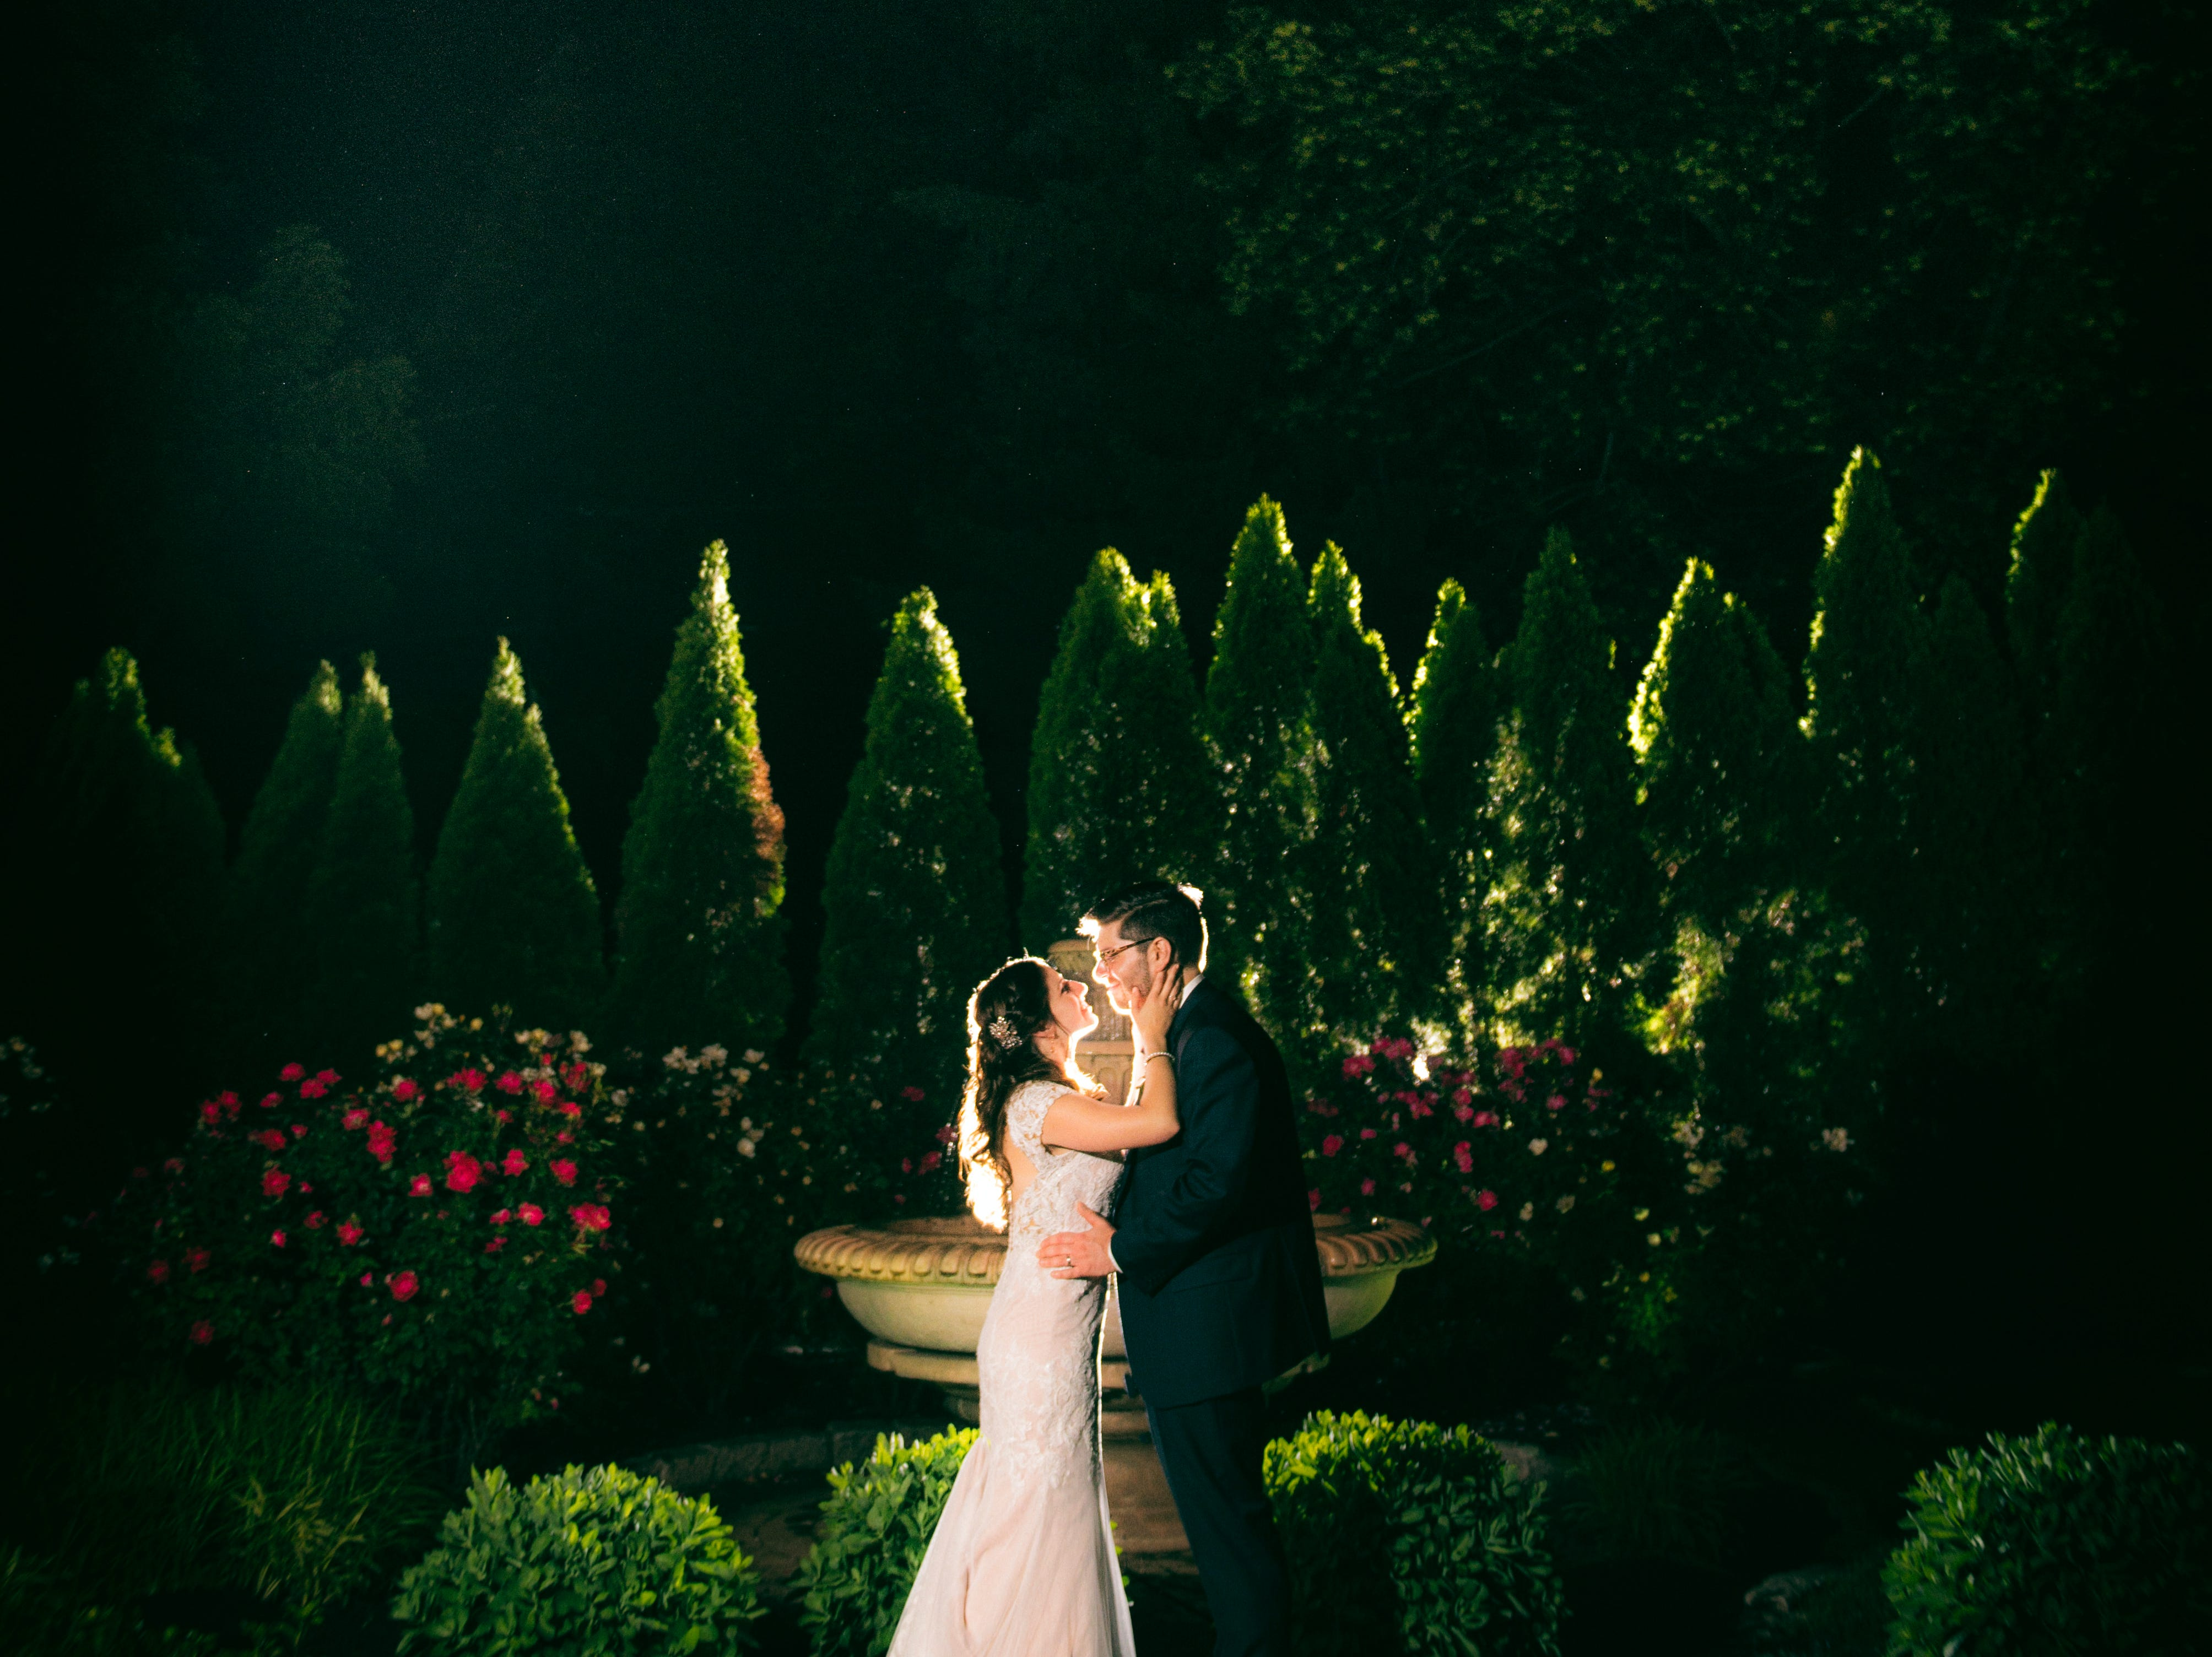 The wedding of Kaitlyn and Chris at The Gables in Chadds Ford, Pennsylvania.